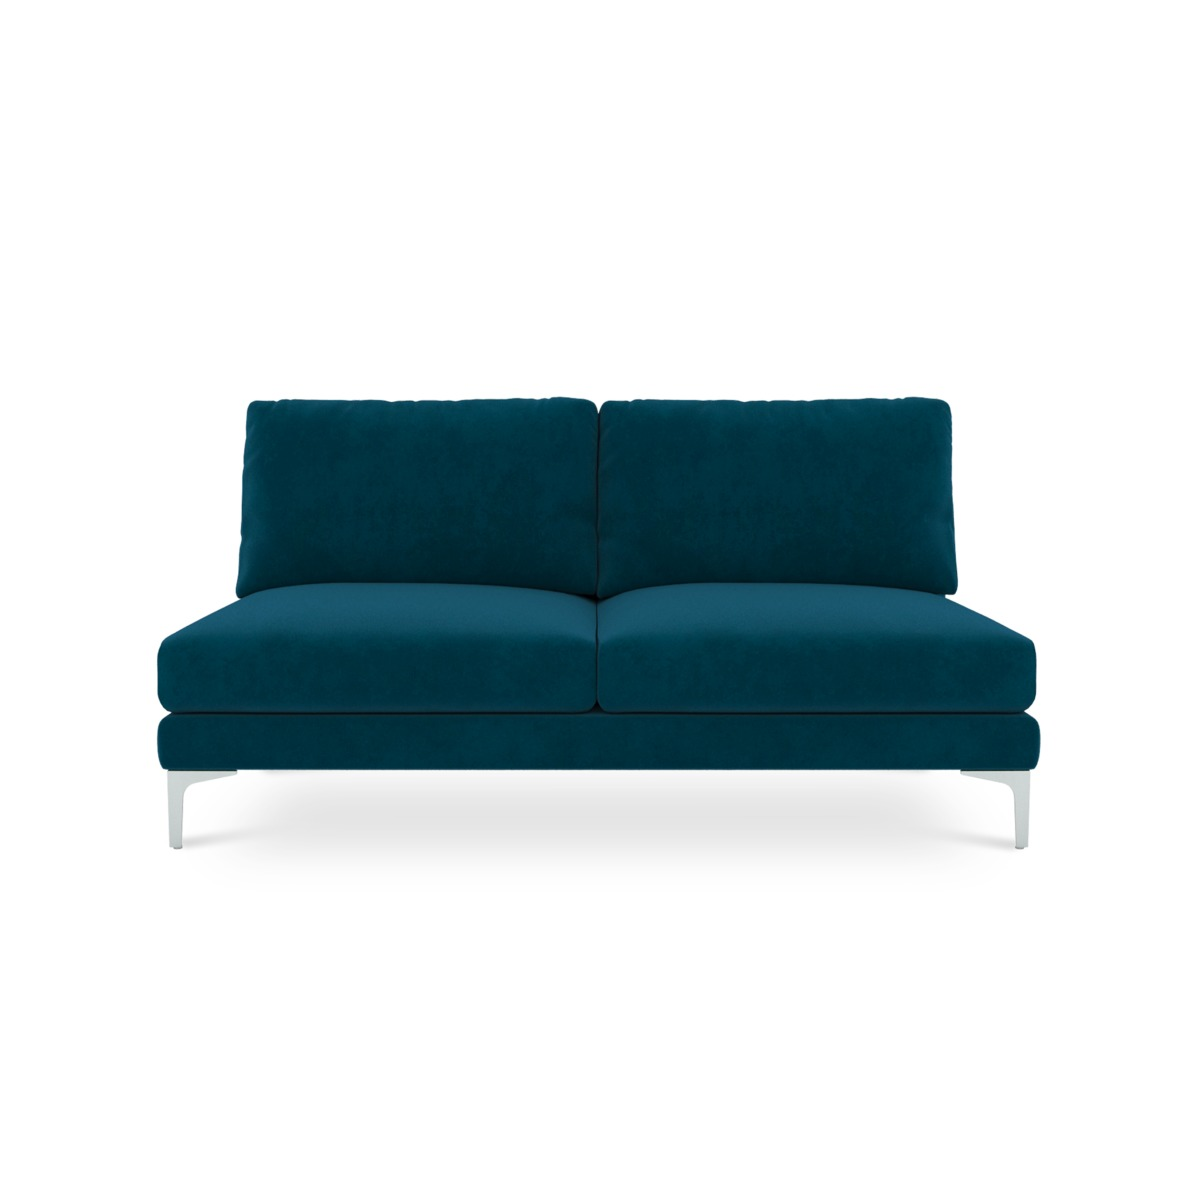 Adams Armless 2-Seater, Turquoise (Silver Leg)